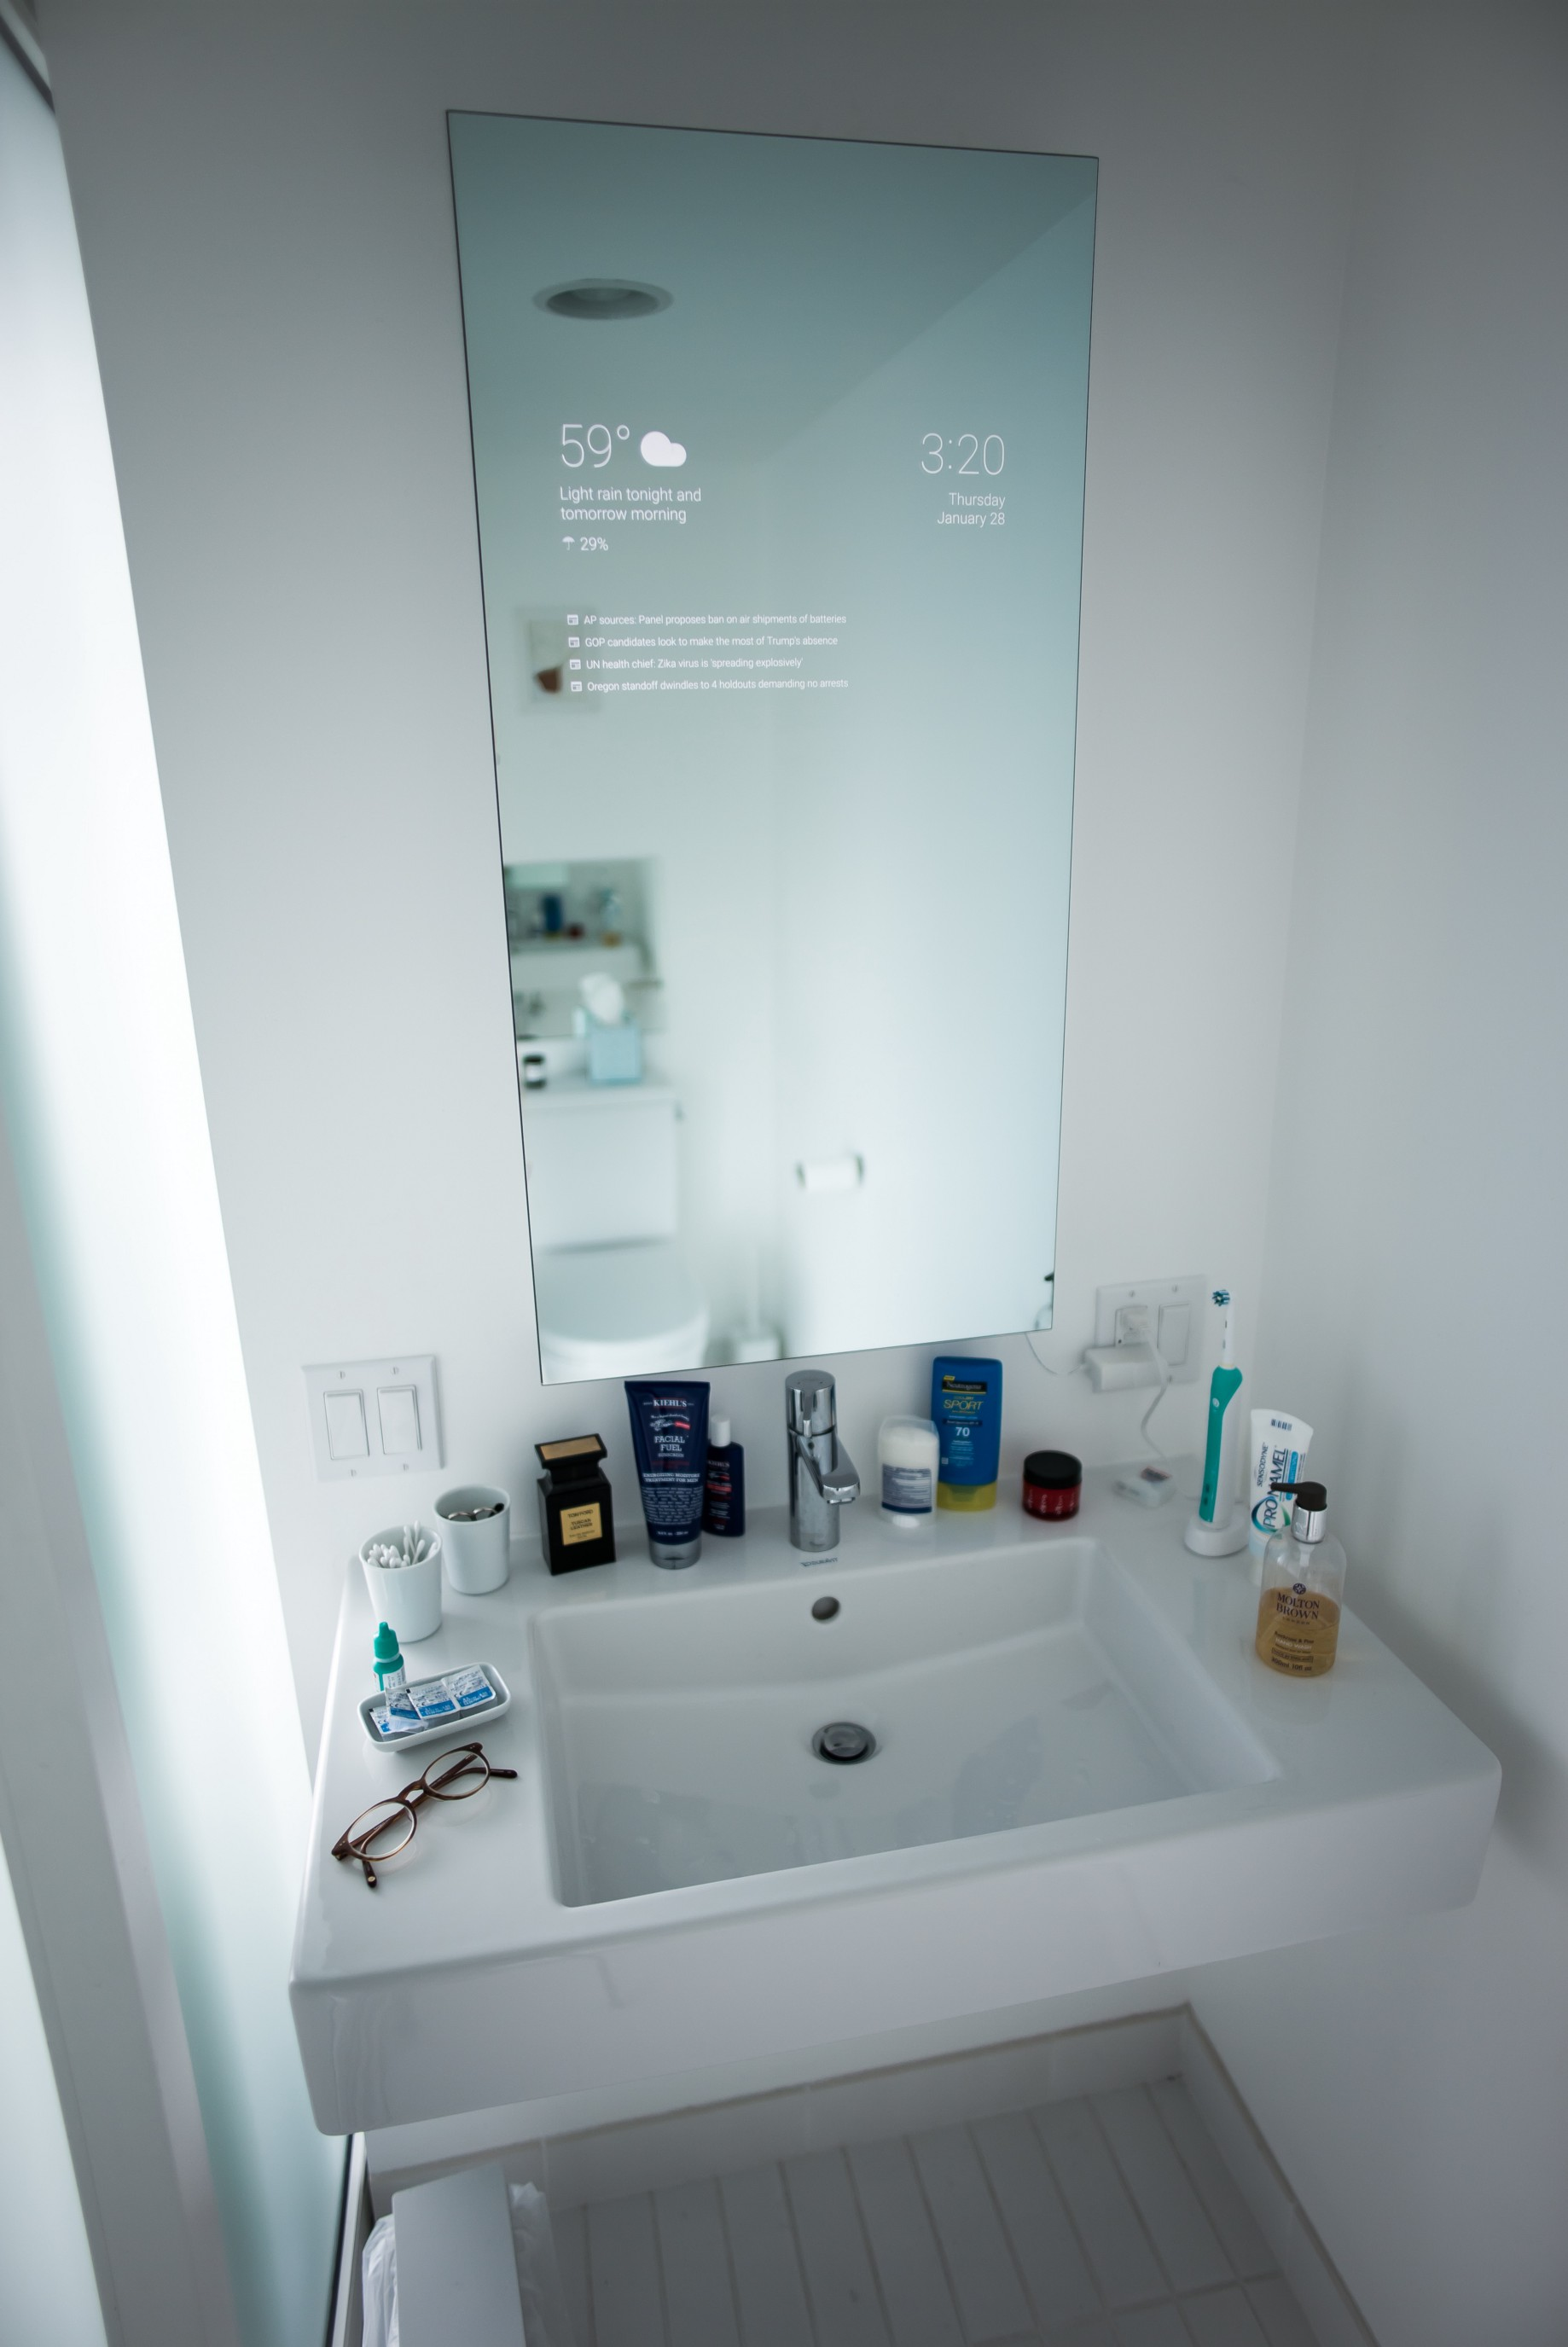 My Bathroom Mirror Is Smarter Than Yours By Max Braun Onezero